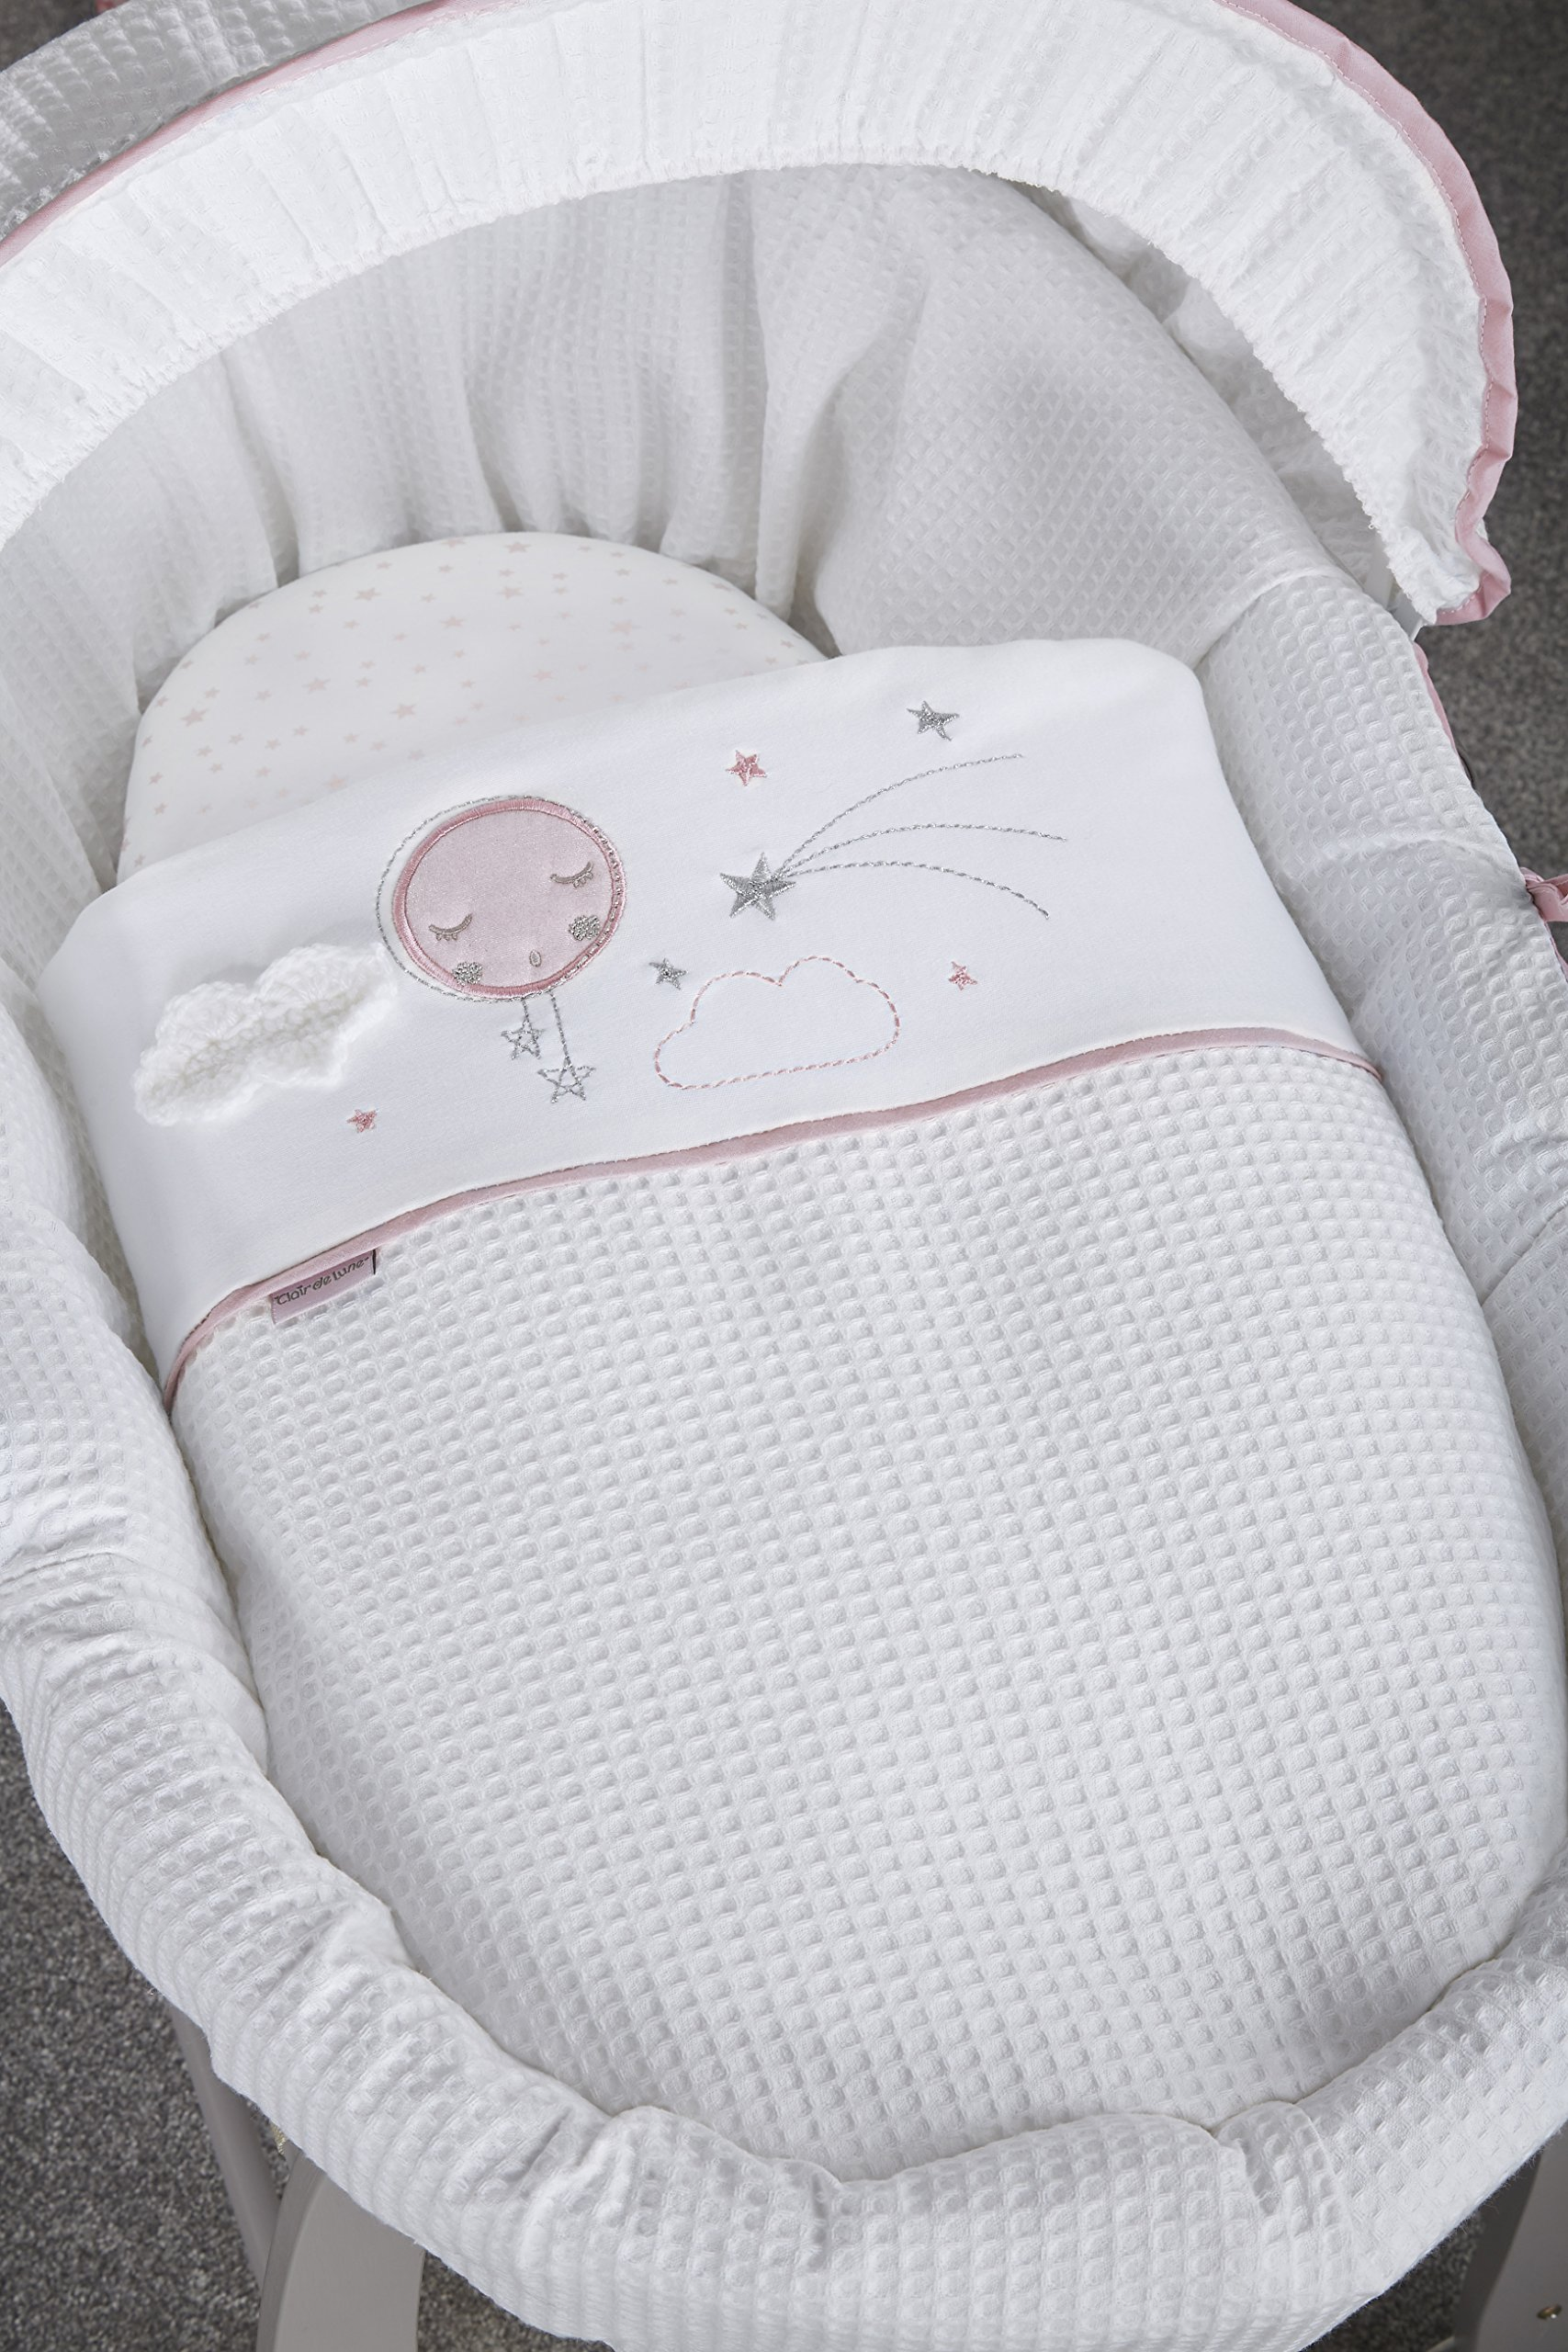 Clair de Lune Wicker Moses Basket, Pink/Grey, Over The Moon Clair de Lune Made from 100% super soft cotton fabric, featuring star prints and a sleepy moon with crocheted cloud appliqué for the perfect finishing touch. Comes complete with a removable, adjustable hood, padded liner, coverlet, 2 carry handles, and a mattress. *stand sold separately. Adjustable hood that's perfect for creating a cosy sleeping space for your precious little one. 4